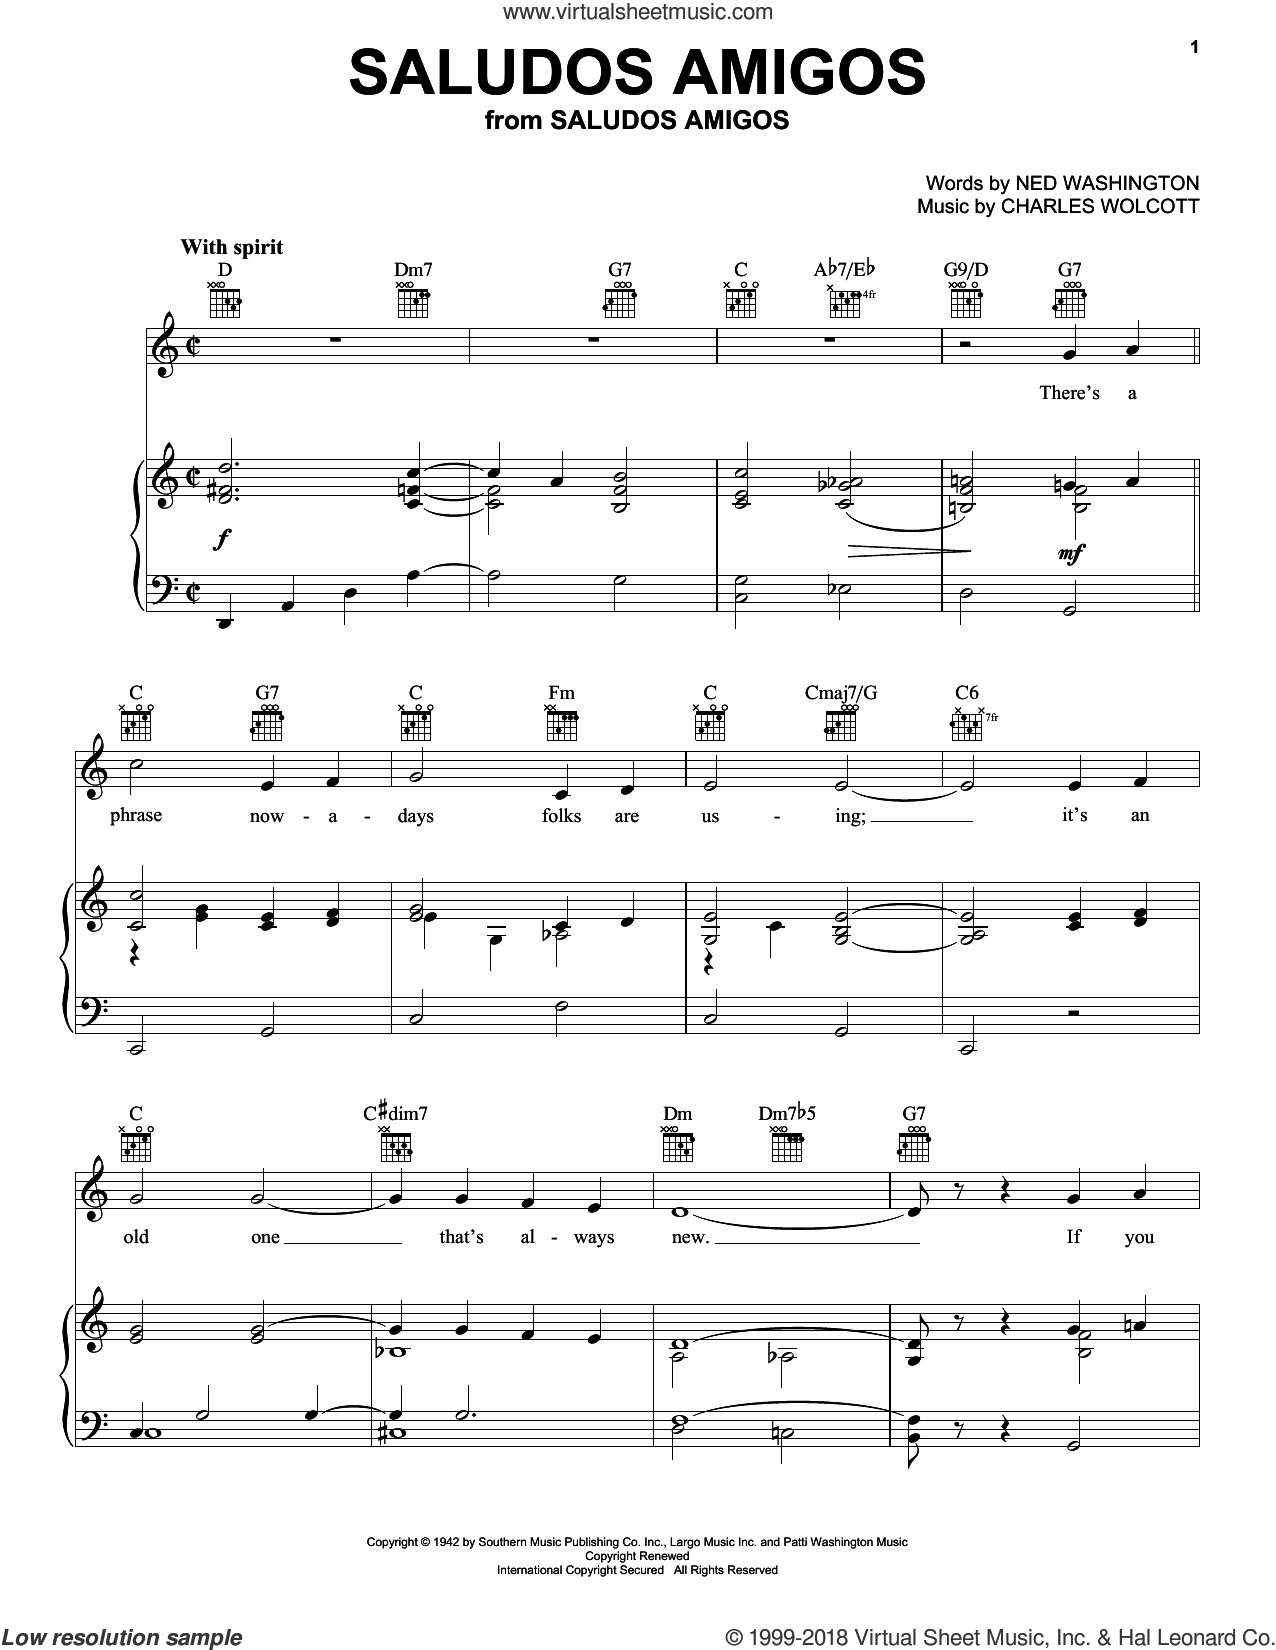 Saludos Amigos sheet music for voice, piano or guitar by Ned Washington and Charles Wolcott, intermediate skill level